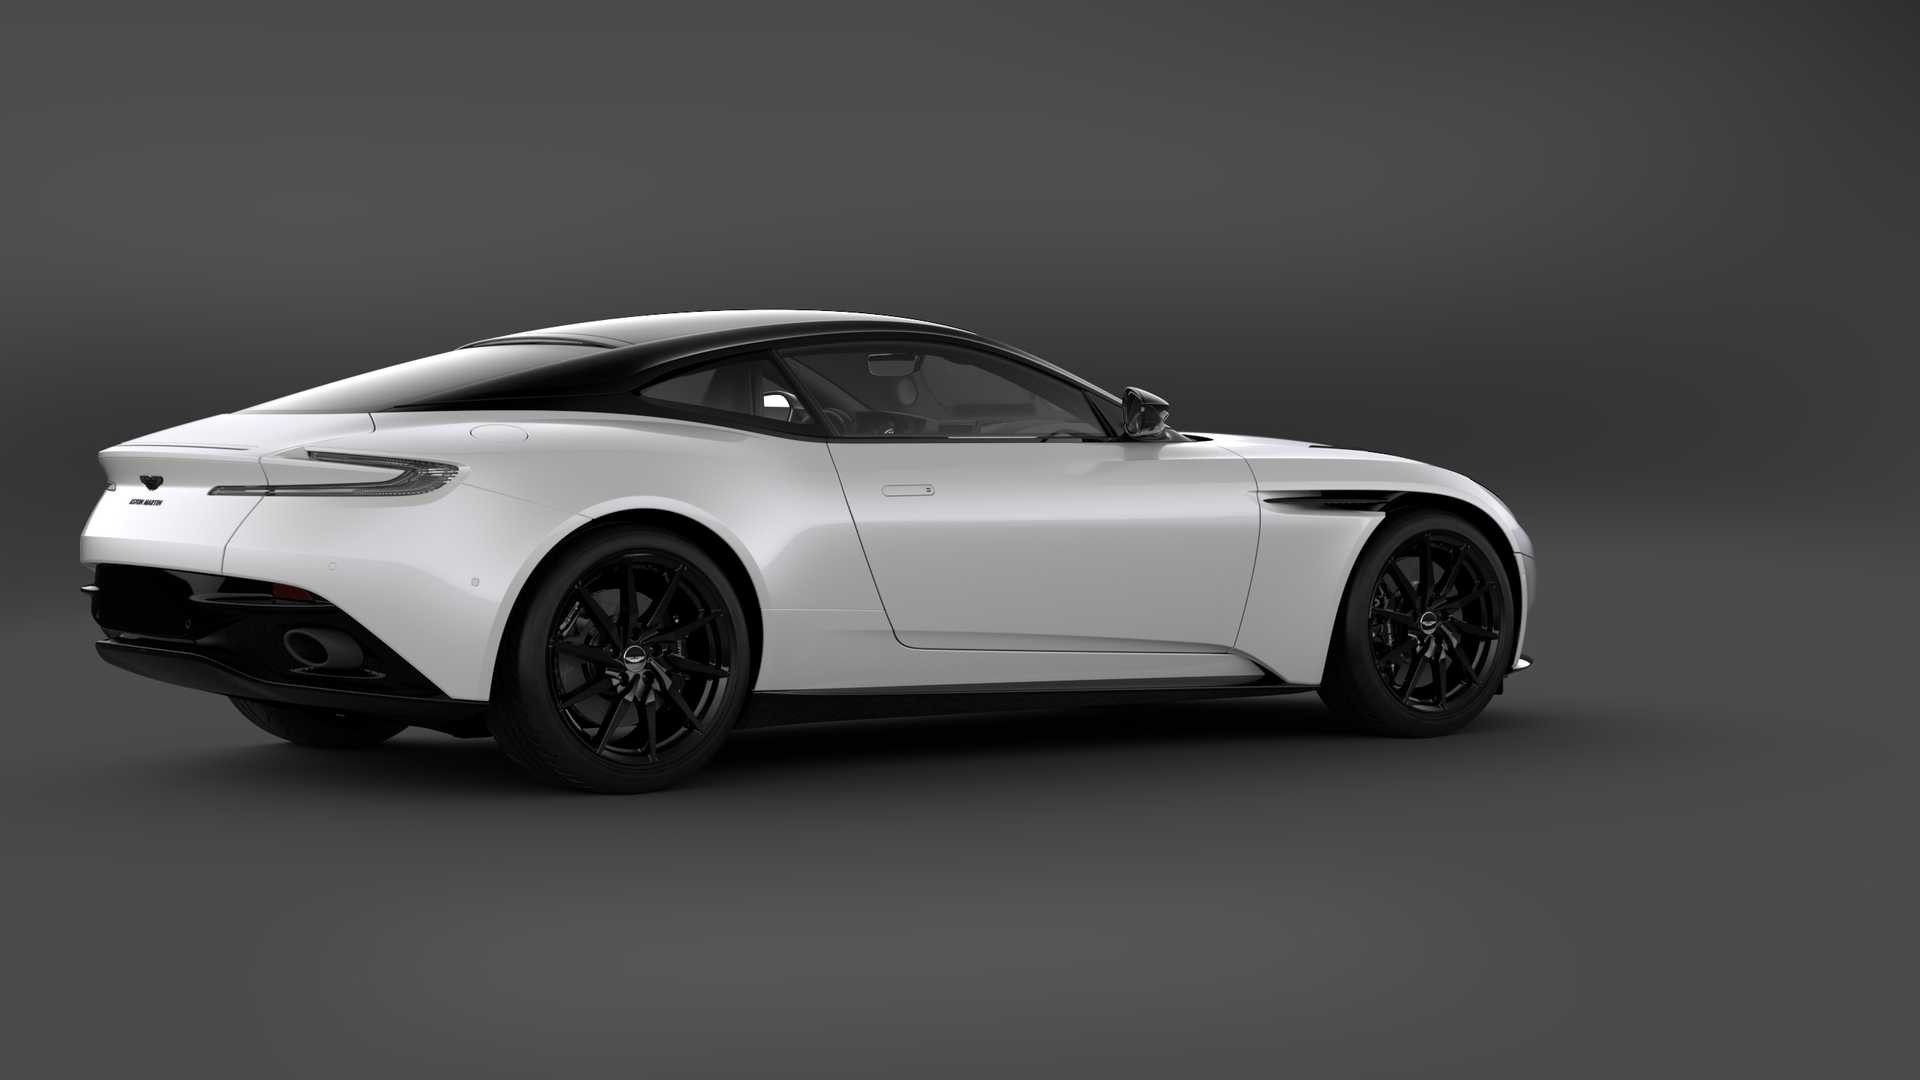 2021-aston-martin-db11-v8-shadow-edition-11.jpg